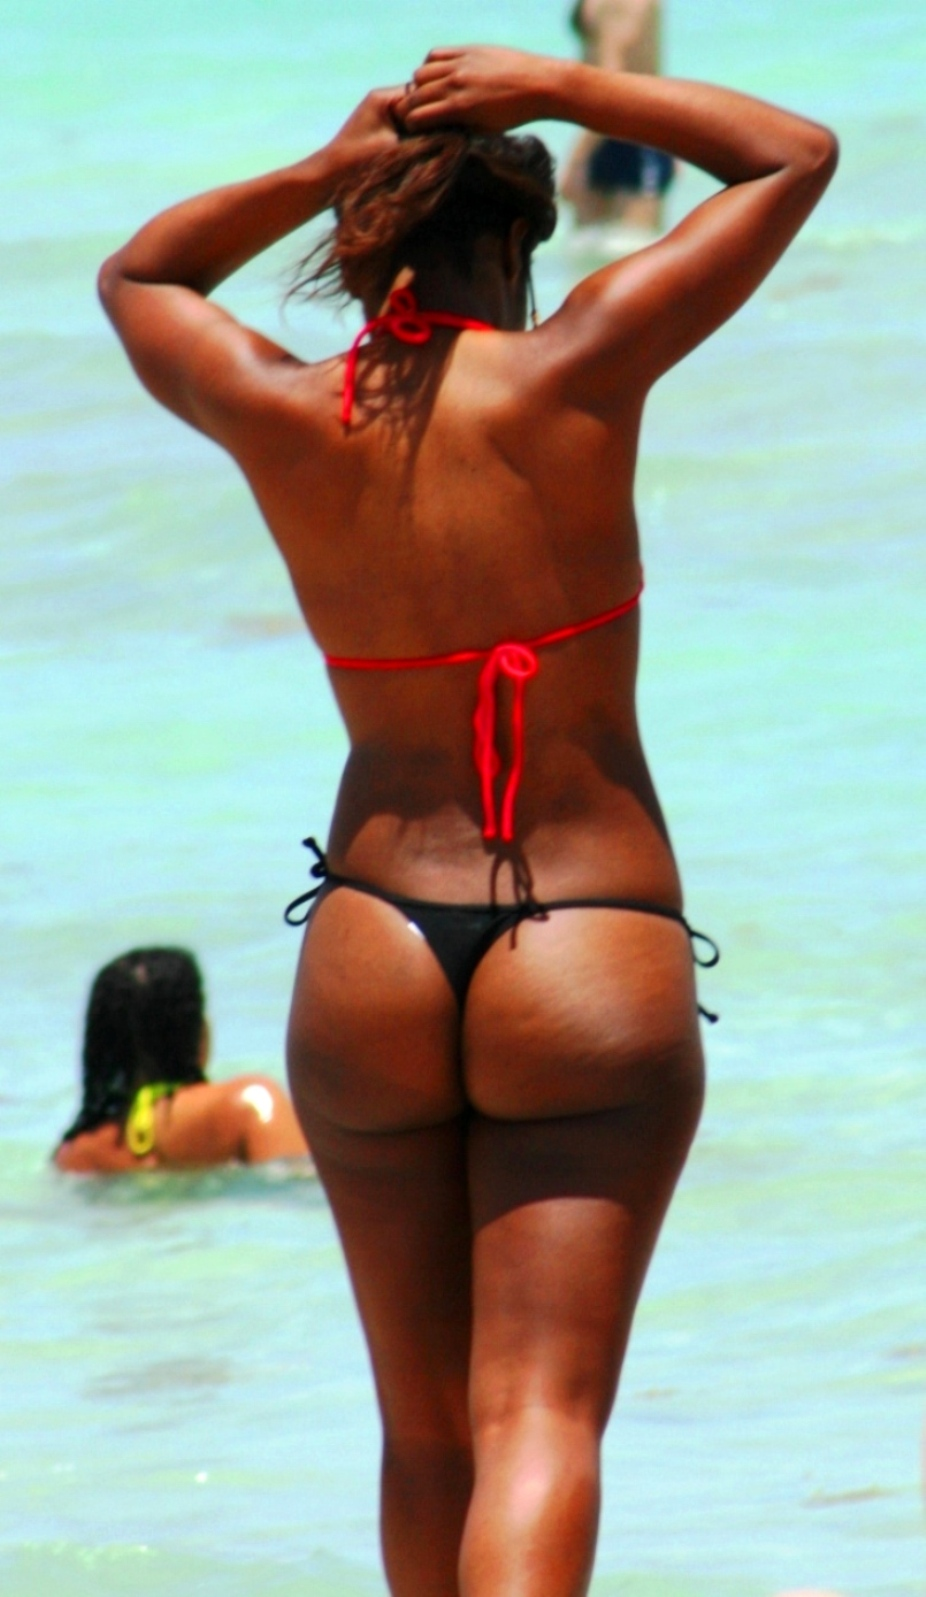 So are thongs finally the standard beach attire for women?